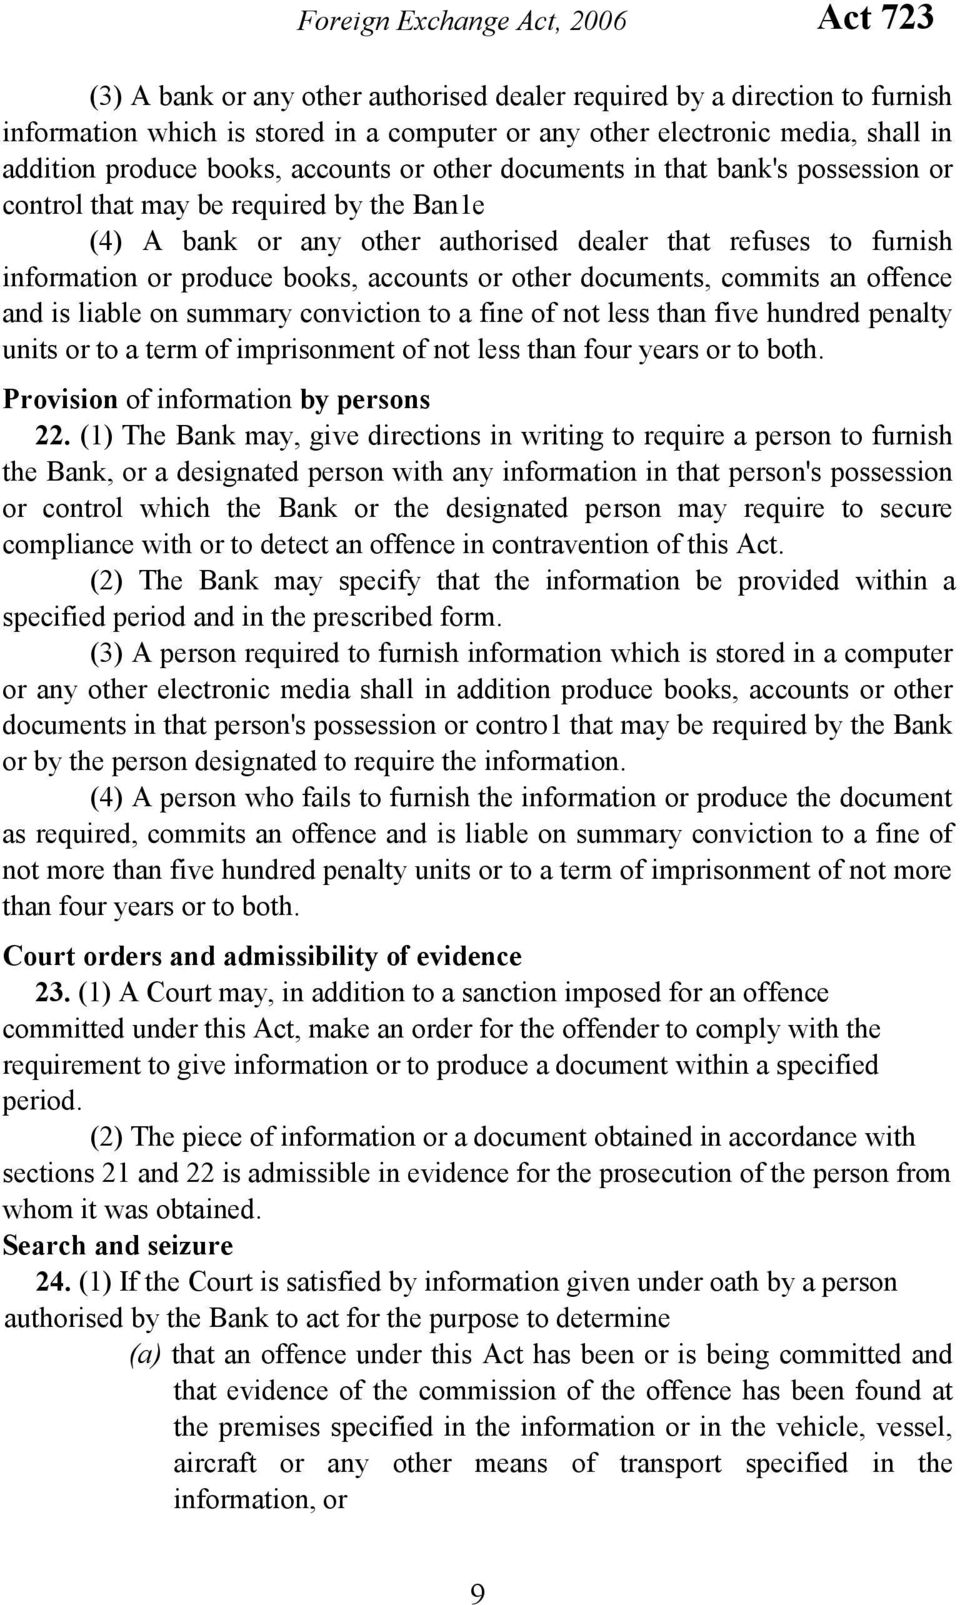 information or produce books, accounts or other documents, commits an offence and is liable on summary conviction to a fine of not less than five hundred penalty units or to a term of imprisonment of